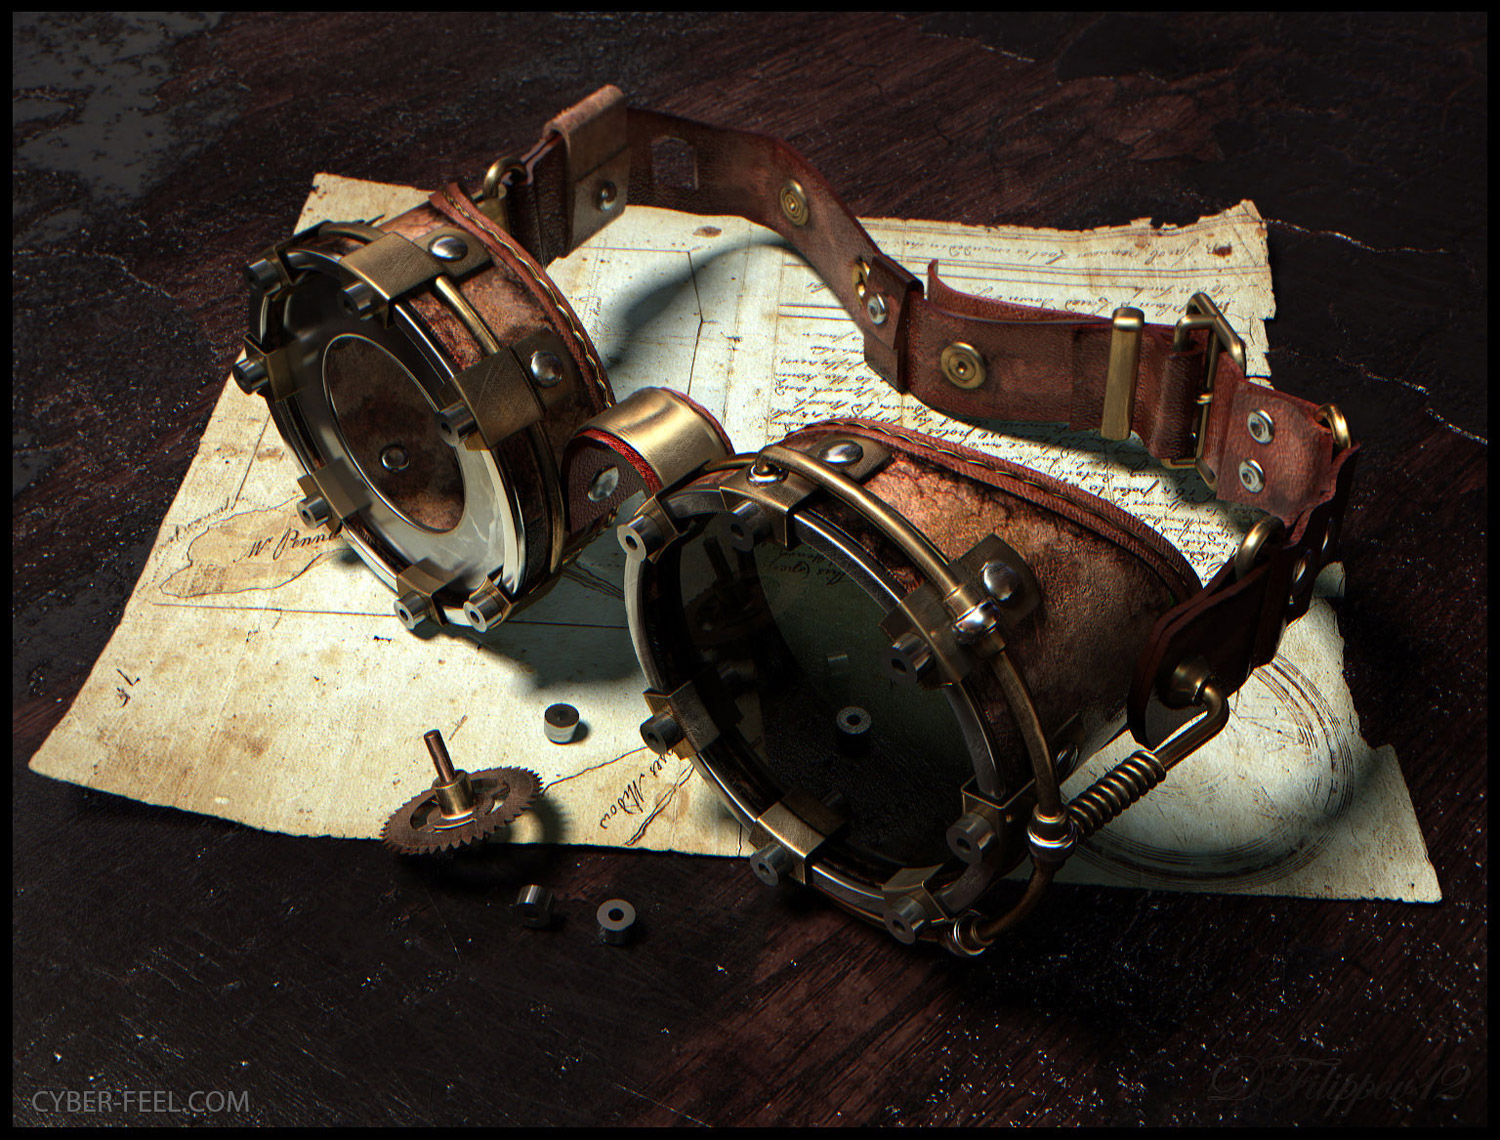 09-Goggles-Dmitry-Filippov-Steampunk-Digital-Art-with-the-Zodiac-www-designstack-co